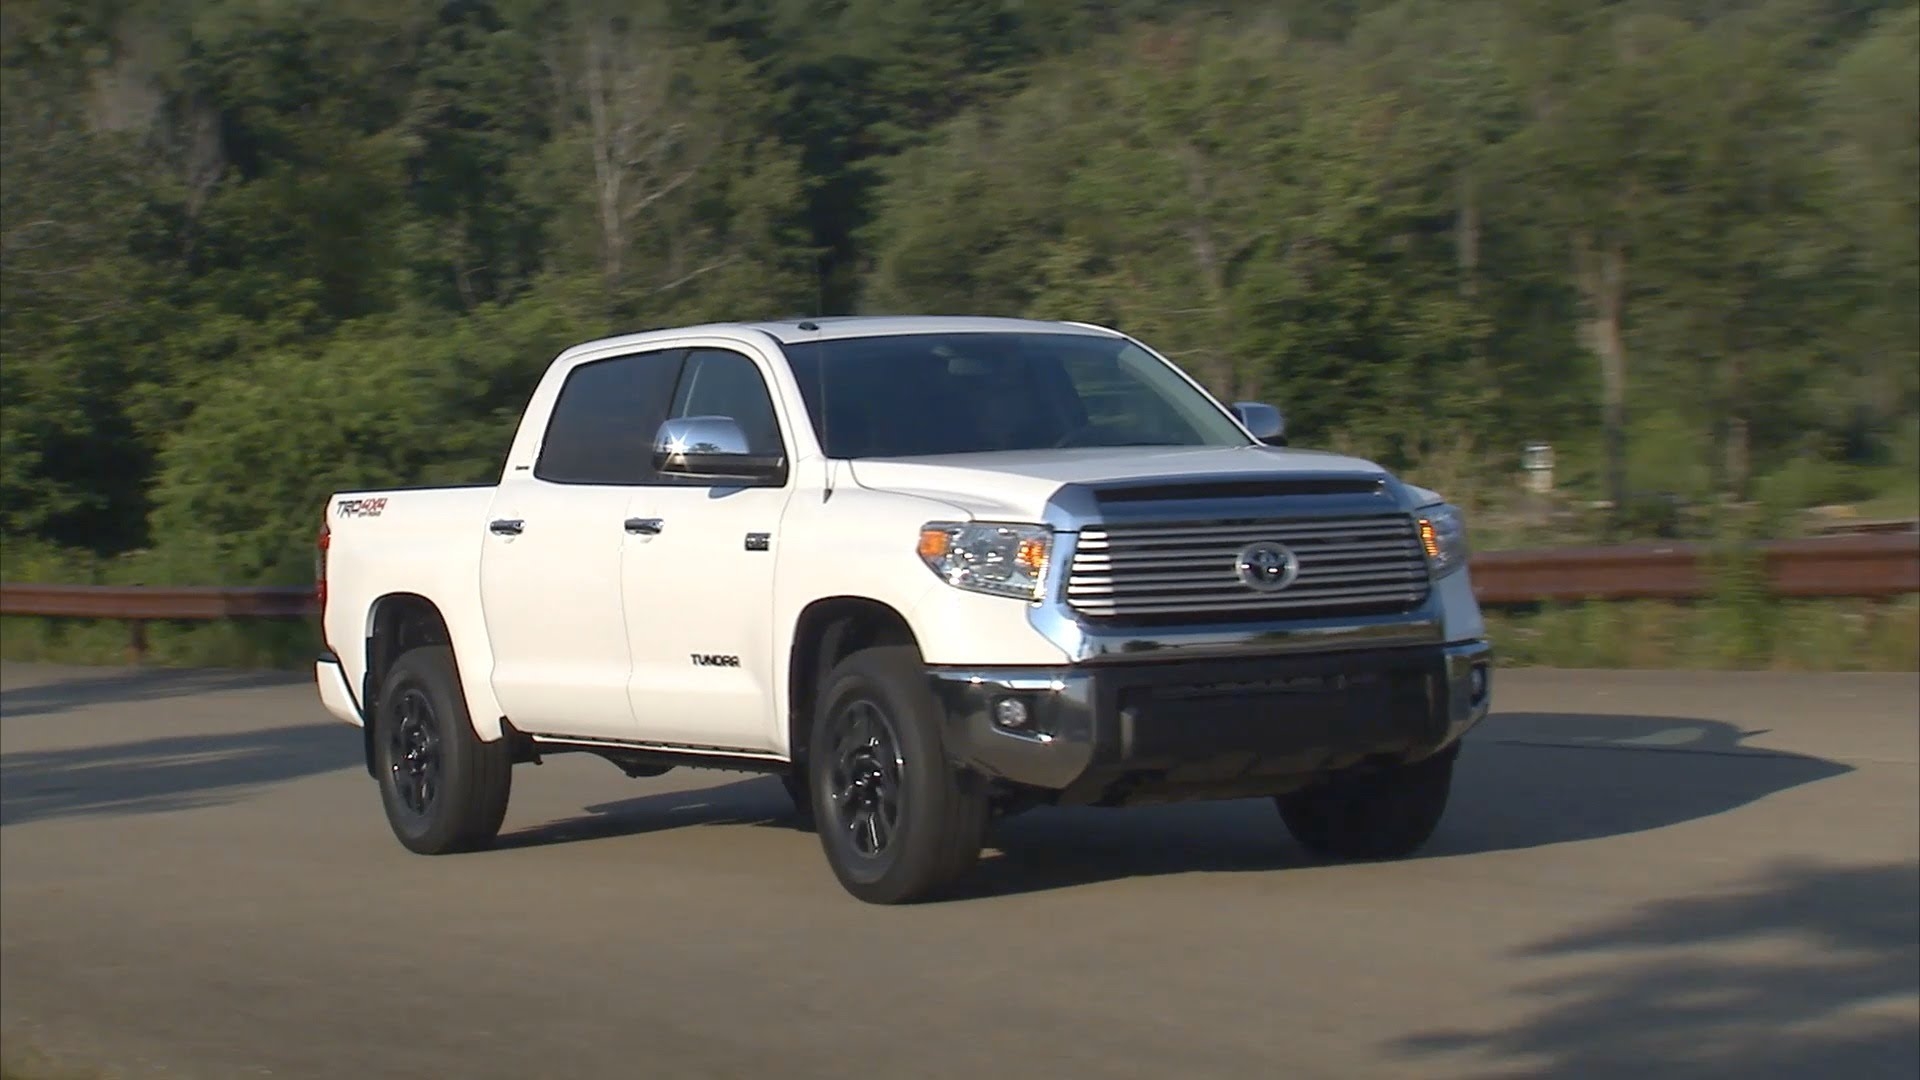 2014 Toyota Tundra Limited DESIGN